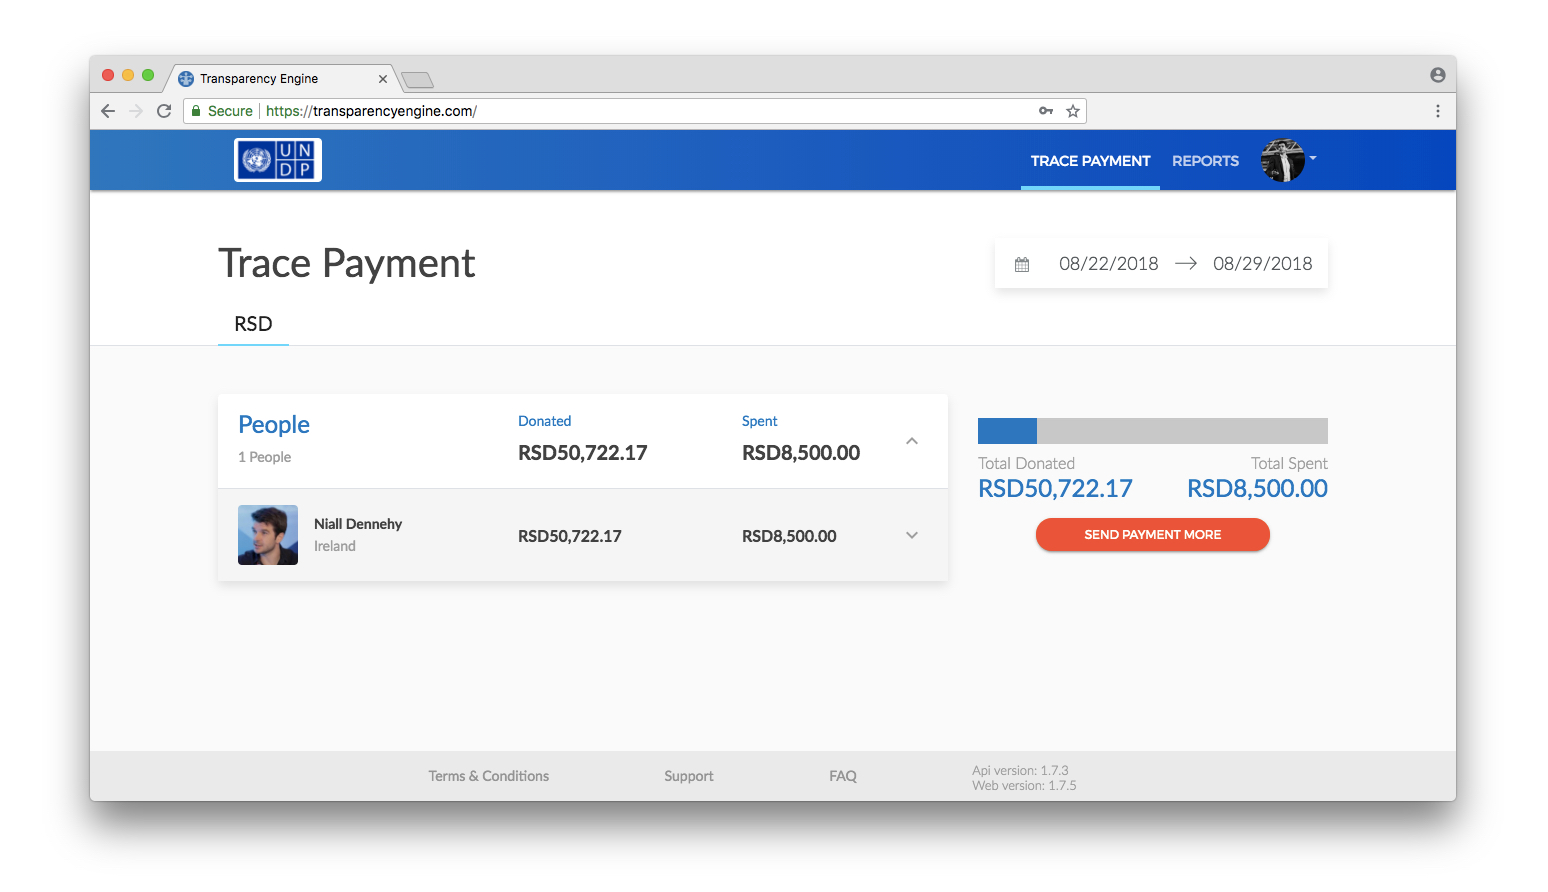 6a Trace Payment Dashboard.jpg